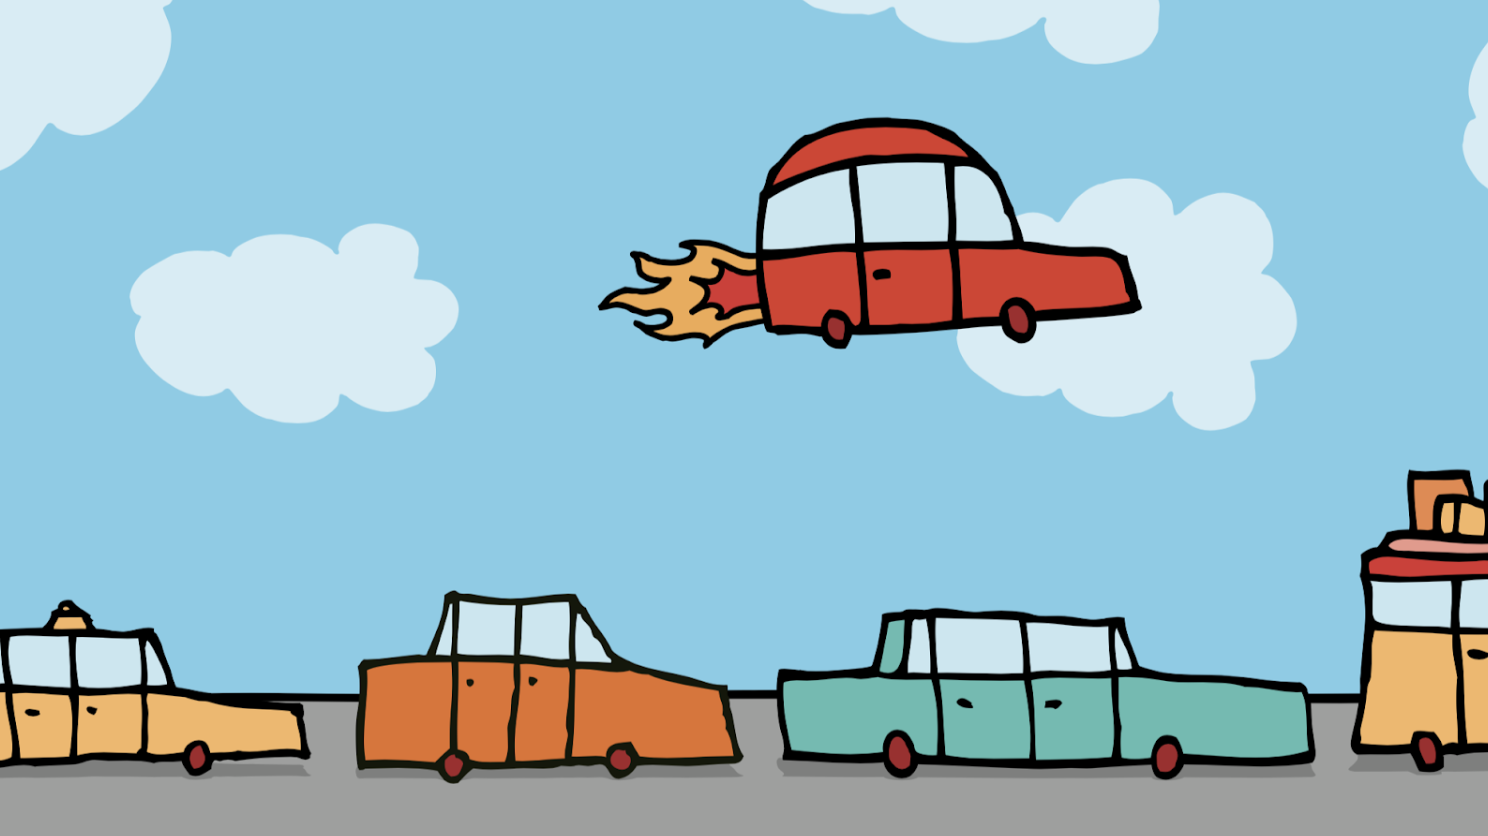 Illustration of red car with flames shooting out of the back, flying over line of cars on sunny roadway.